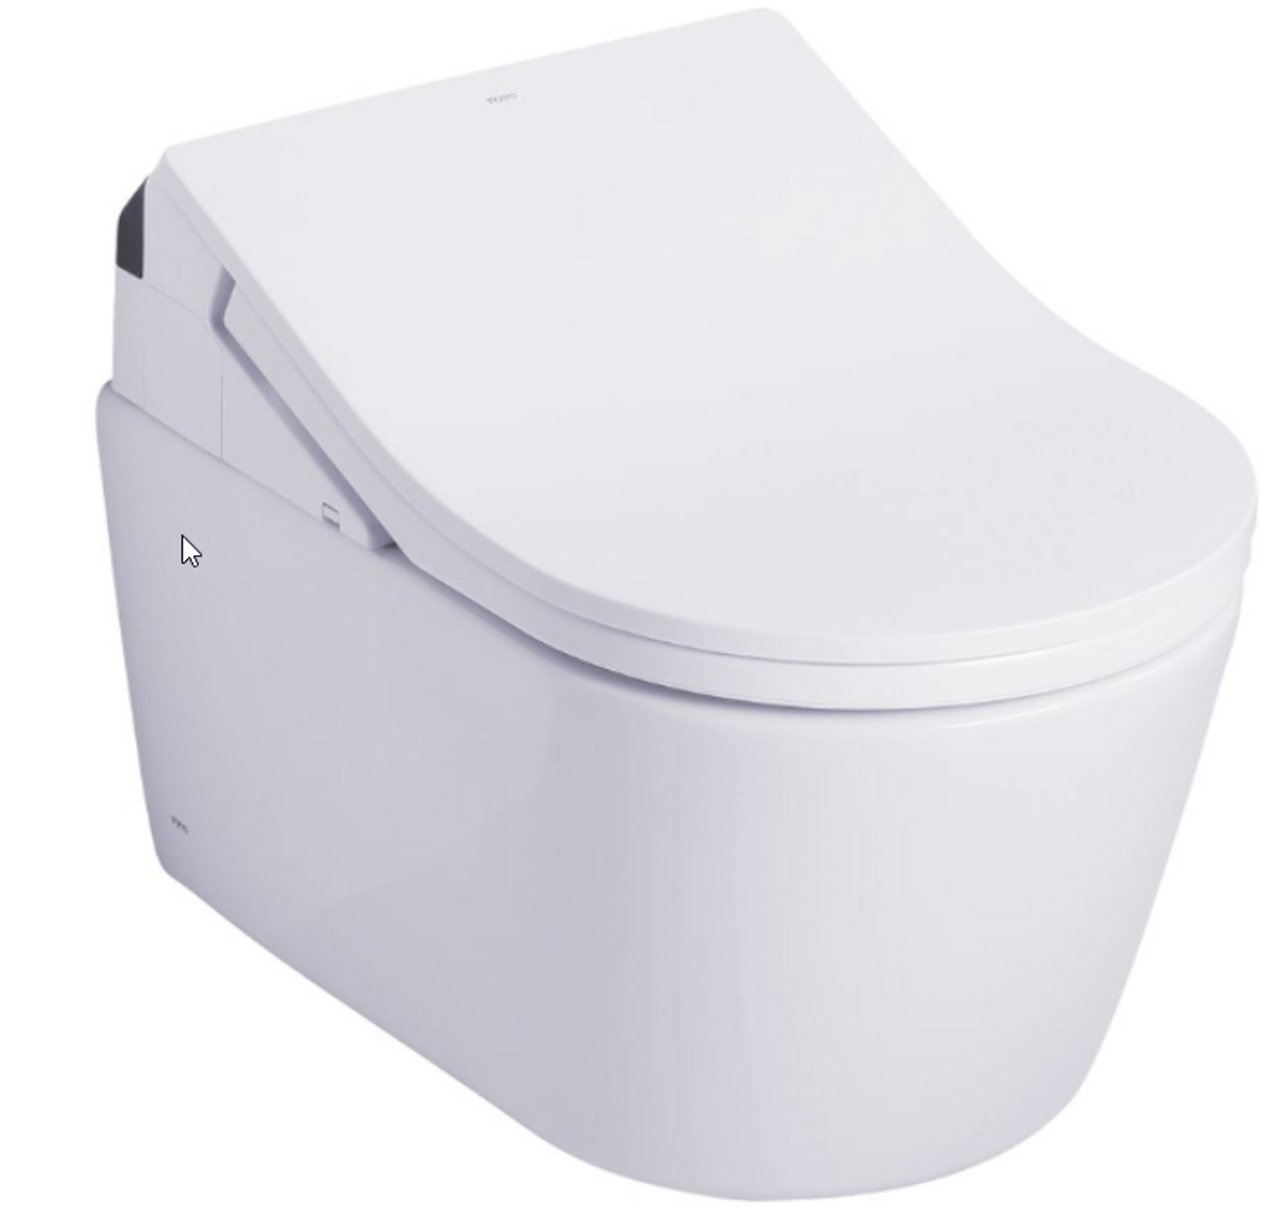 Pleasant Toto Rp Washlet Rx Wall Hung Toilet 1 28 Gpf 0 9 Gpf Auto Flush Cwt4474047Cmfga Pabps2019 Chair Design Images Pabps2019Com